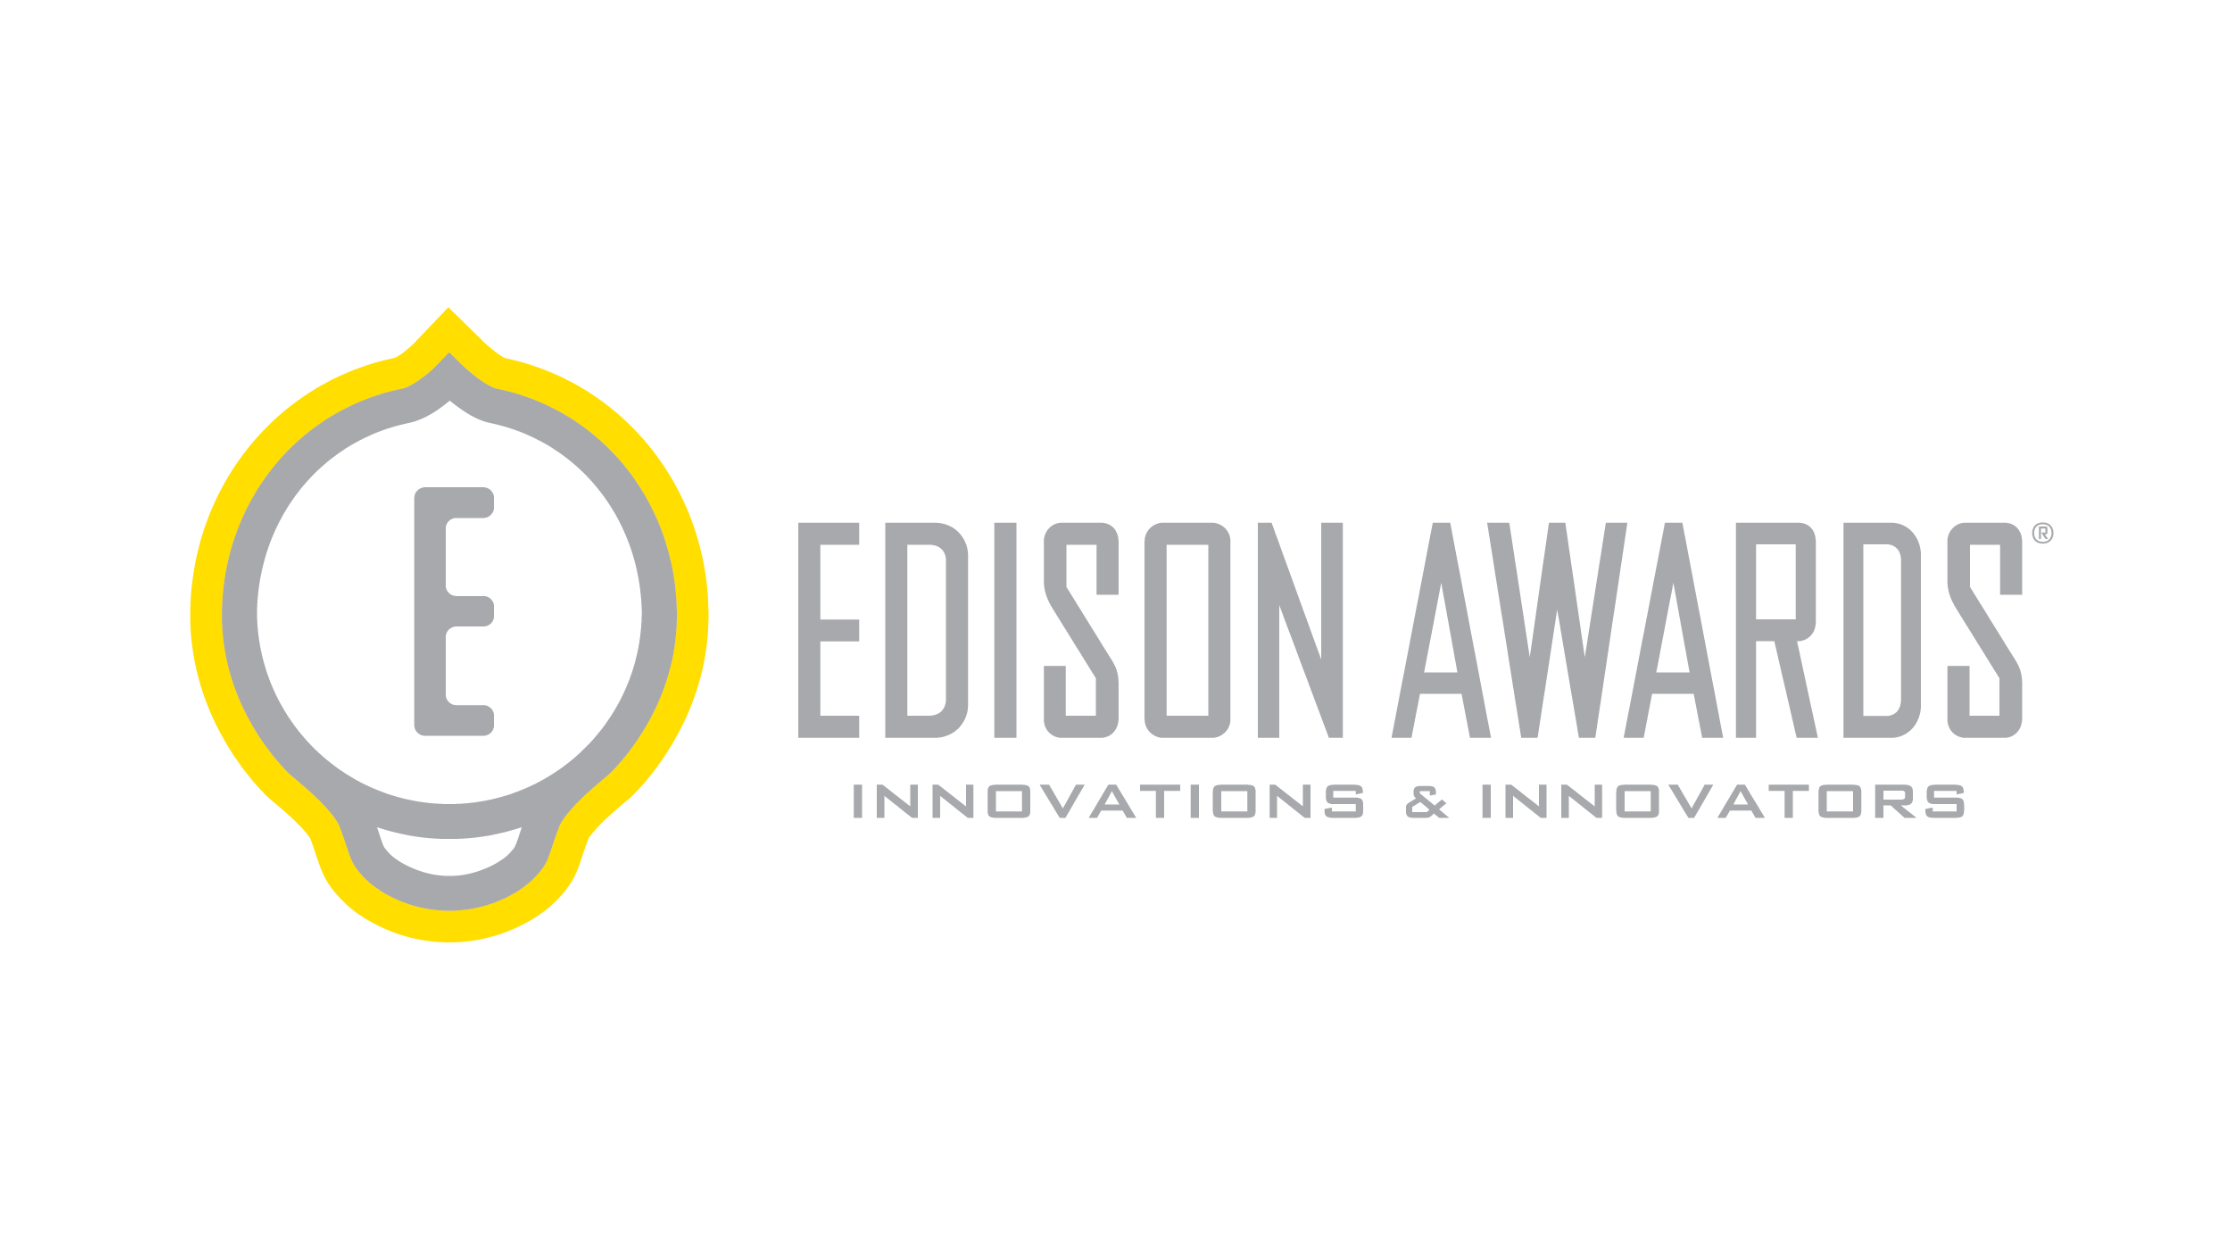 Agenda Announced for the 2021 Edison Awards